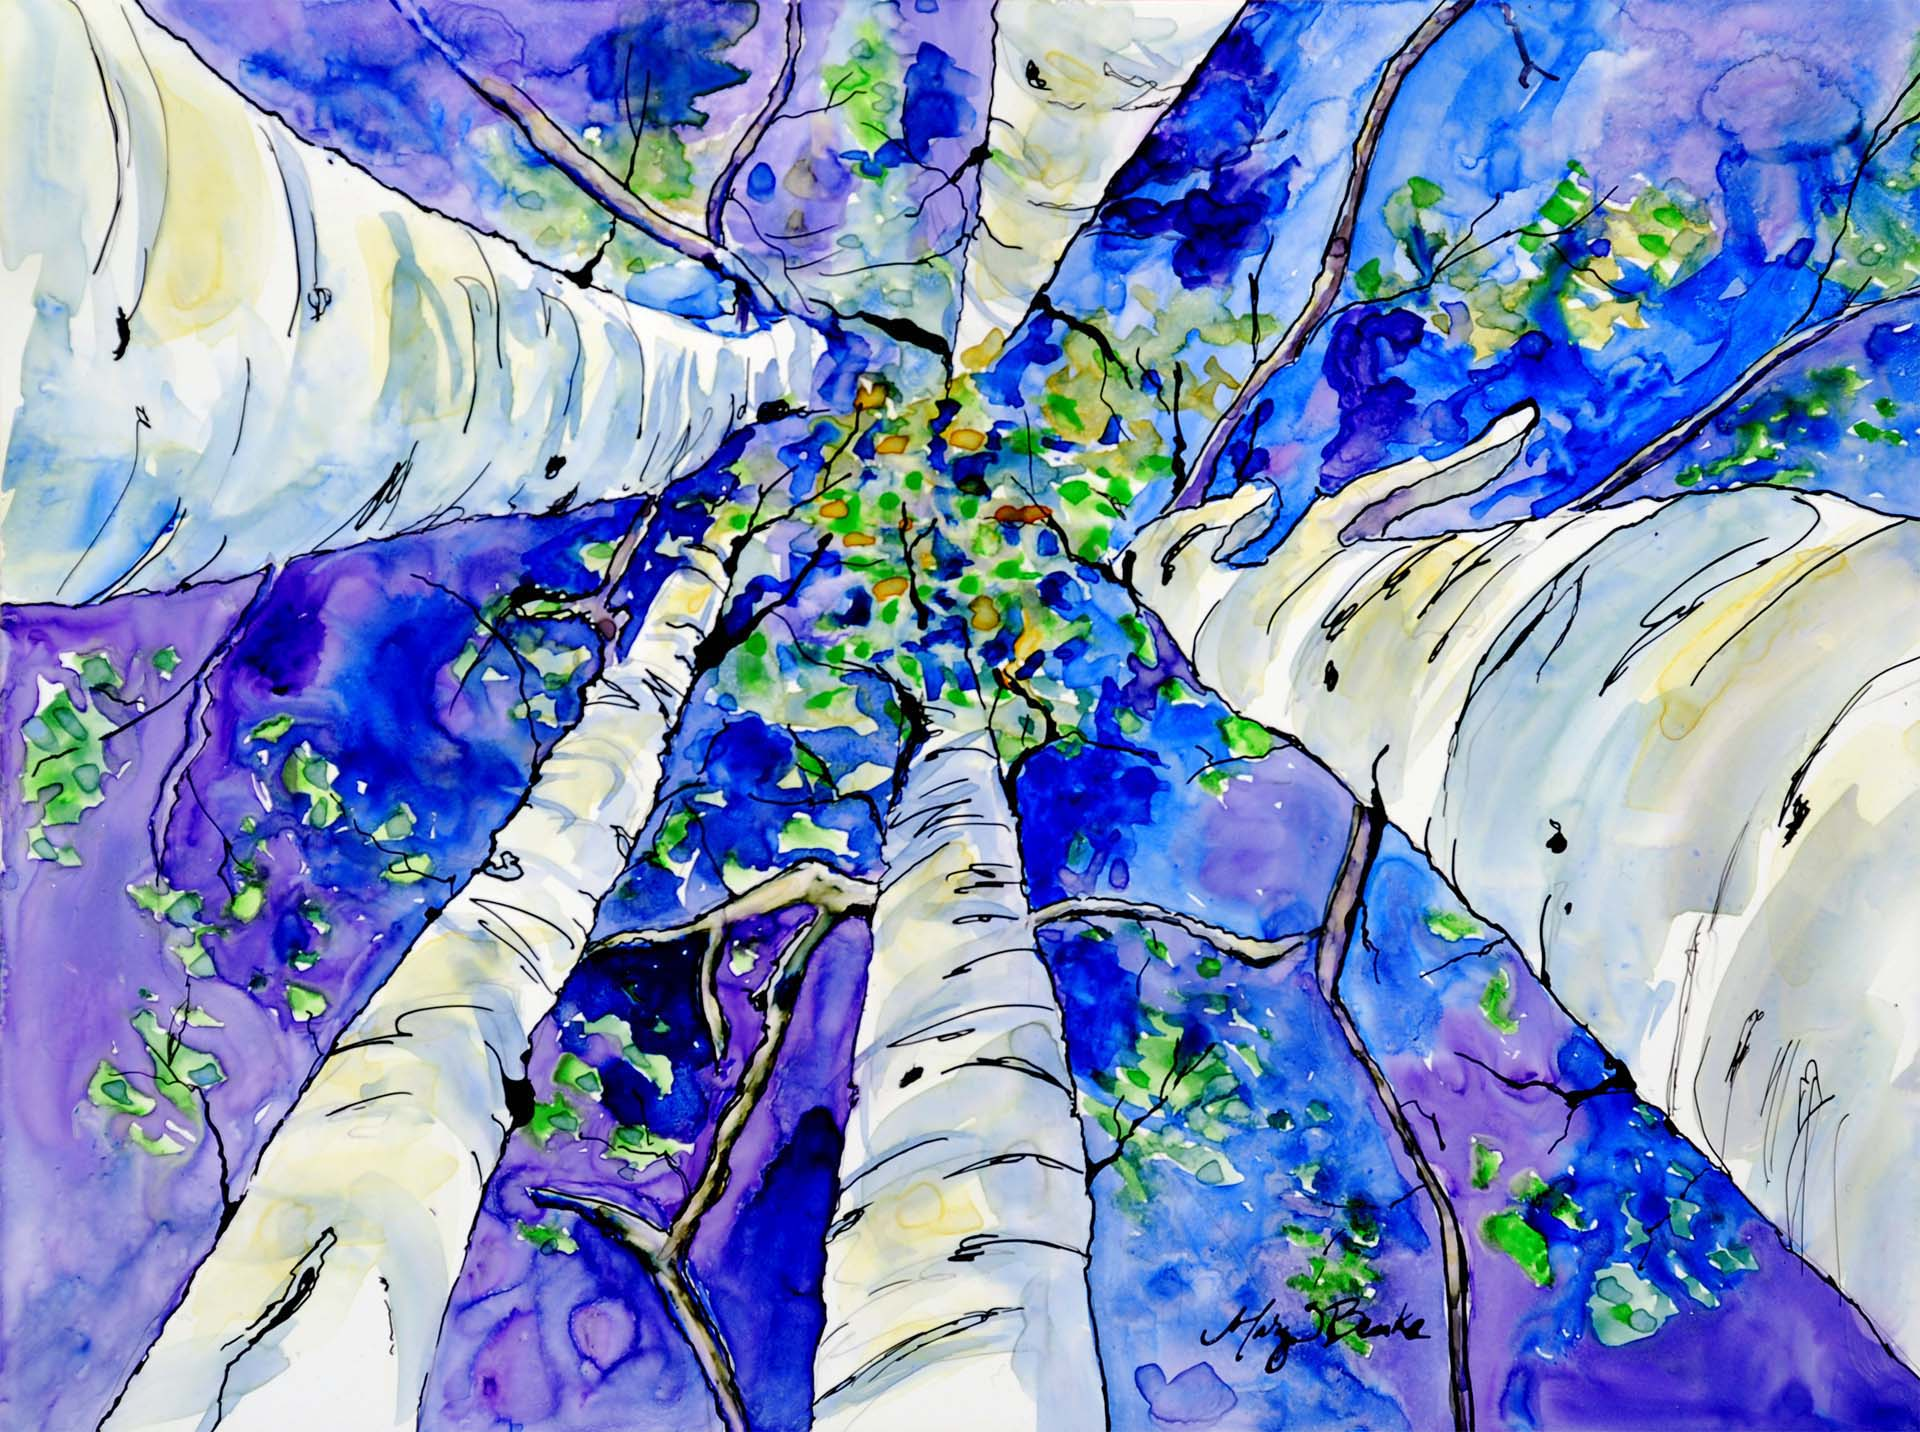 Skyward | Watercolor & Ink on Yupo | 9 x 12 | $350